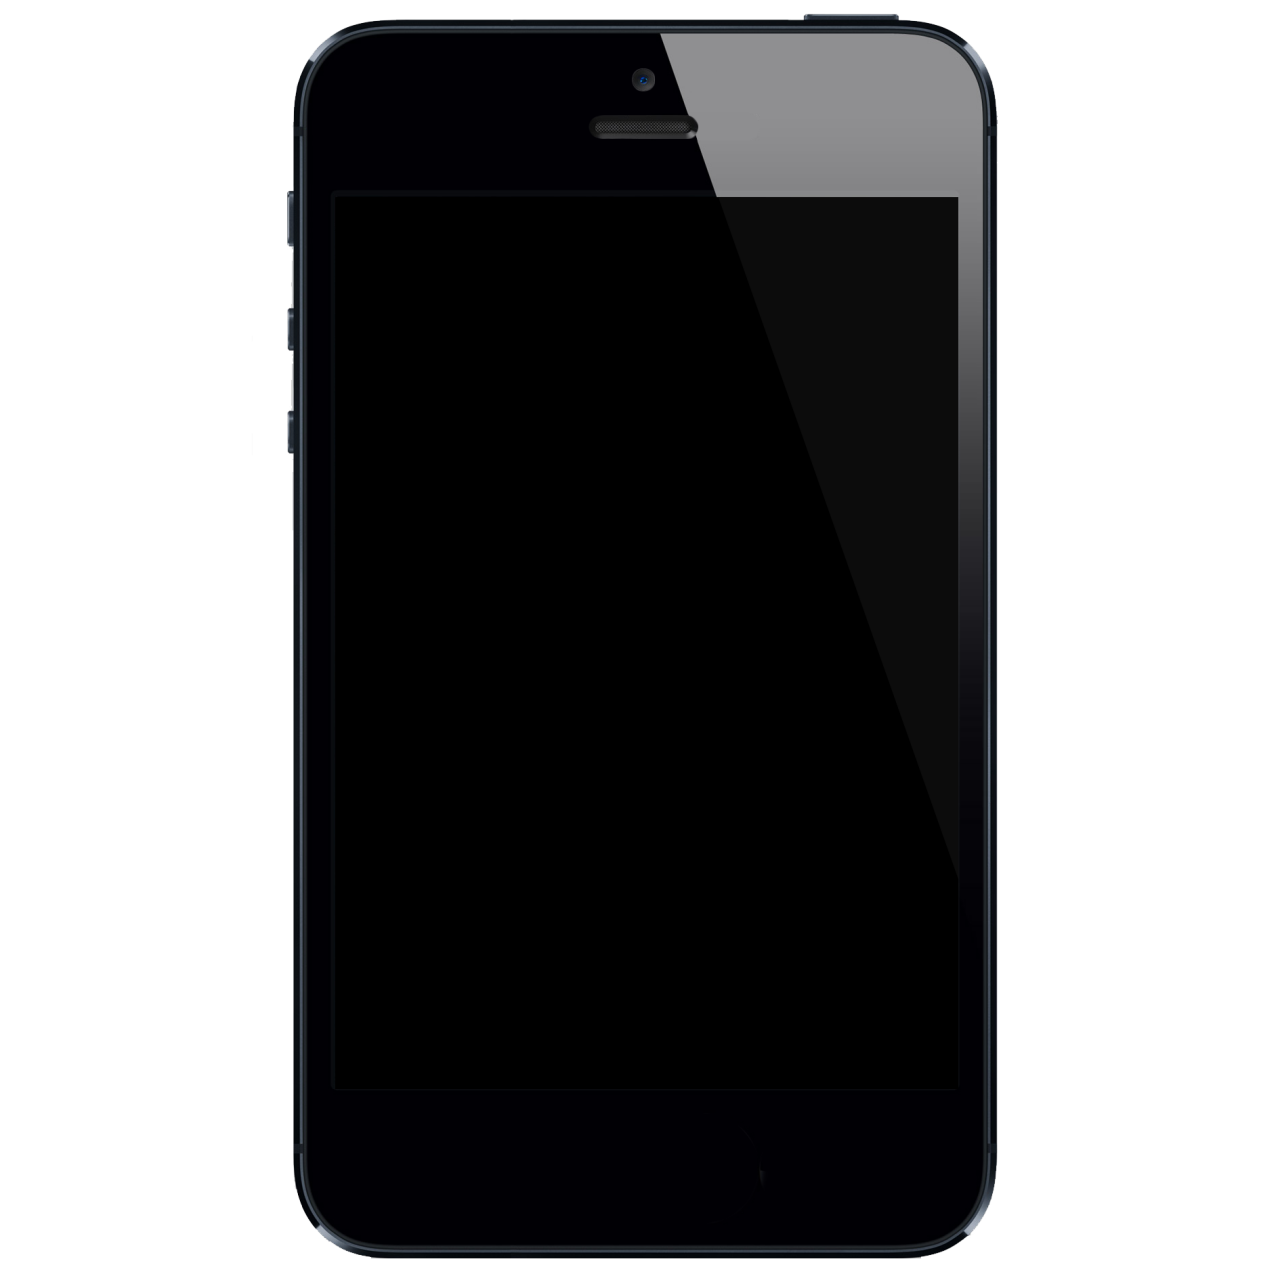 Iphone 6 Black Png | www.imgkid.com - The Image Kid Has It!